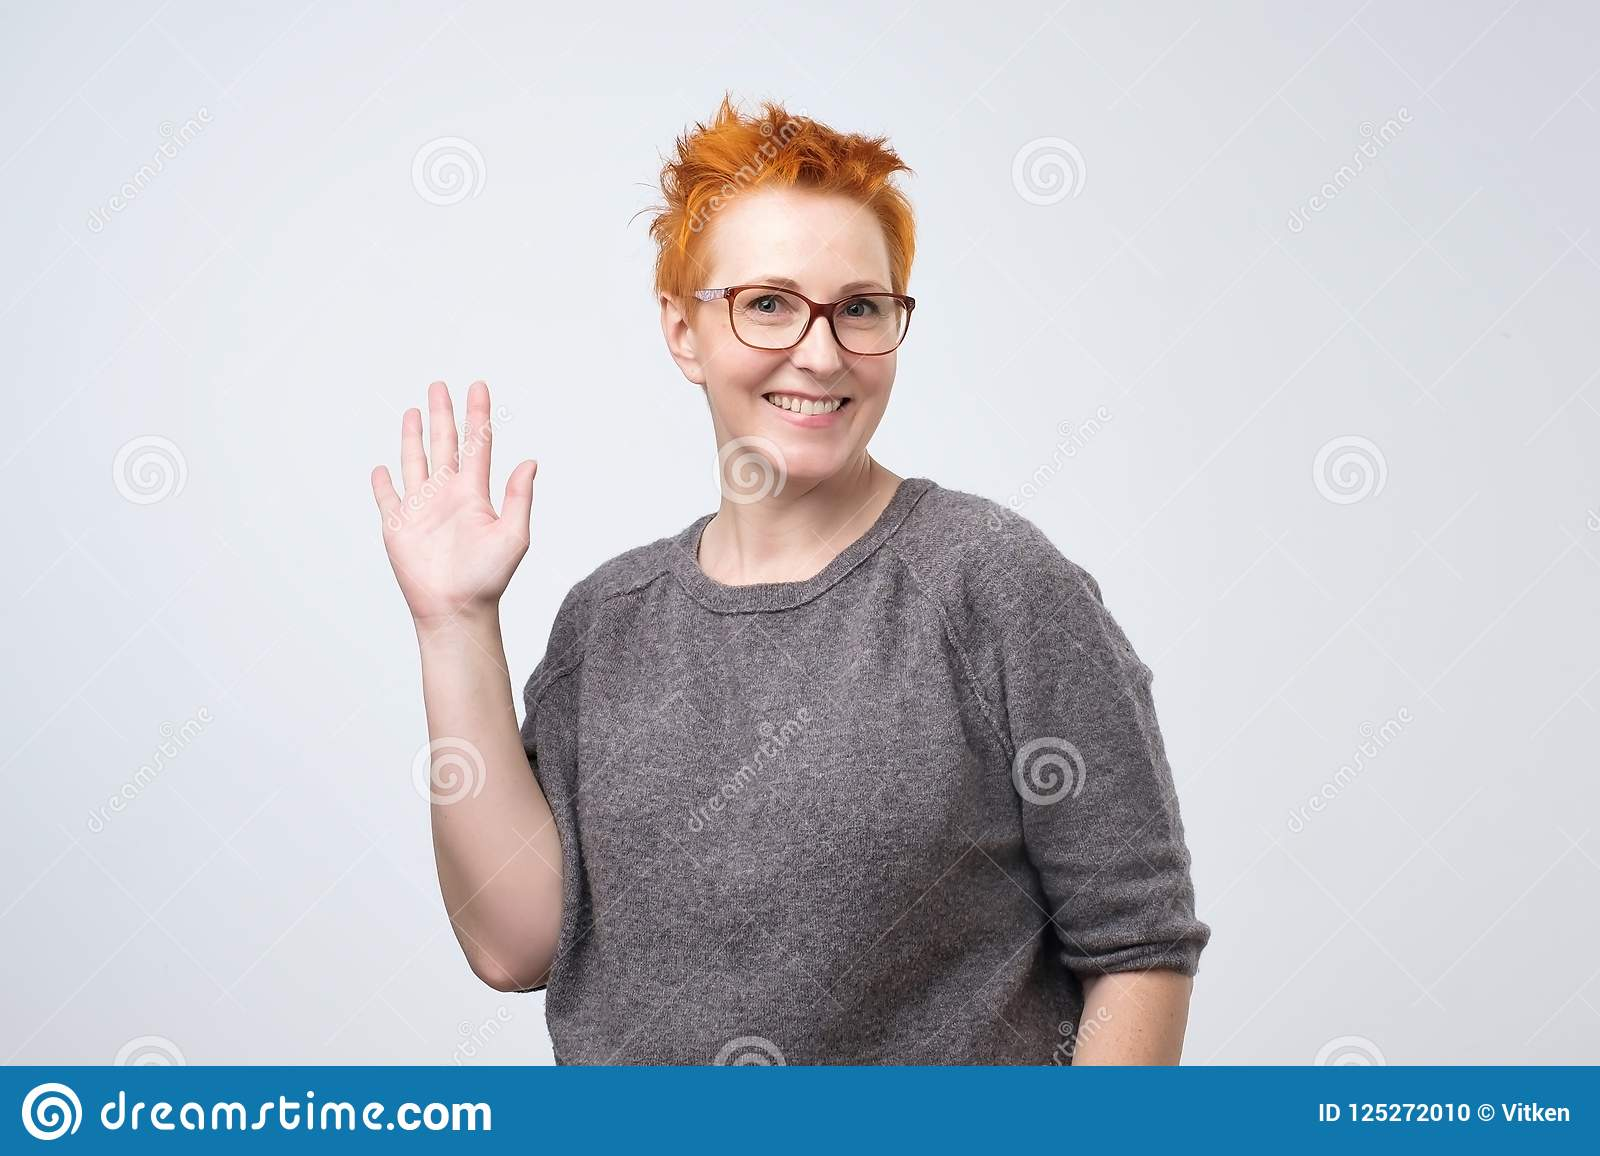 6800c5ca3ec1 Positive mature caucasian woman with red hairstyle and glasses smiling  friendly and waving hand at camera.